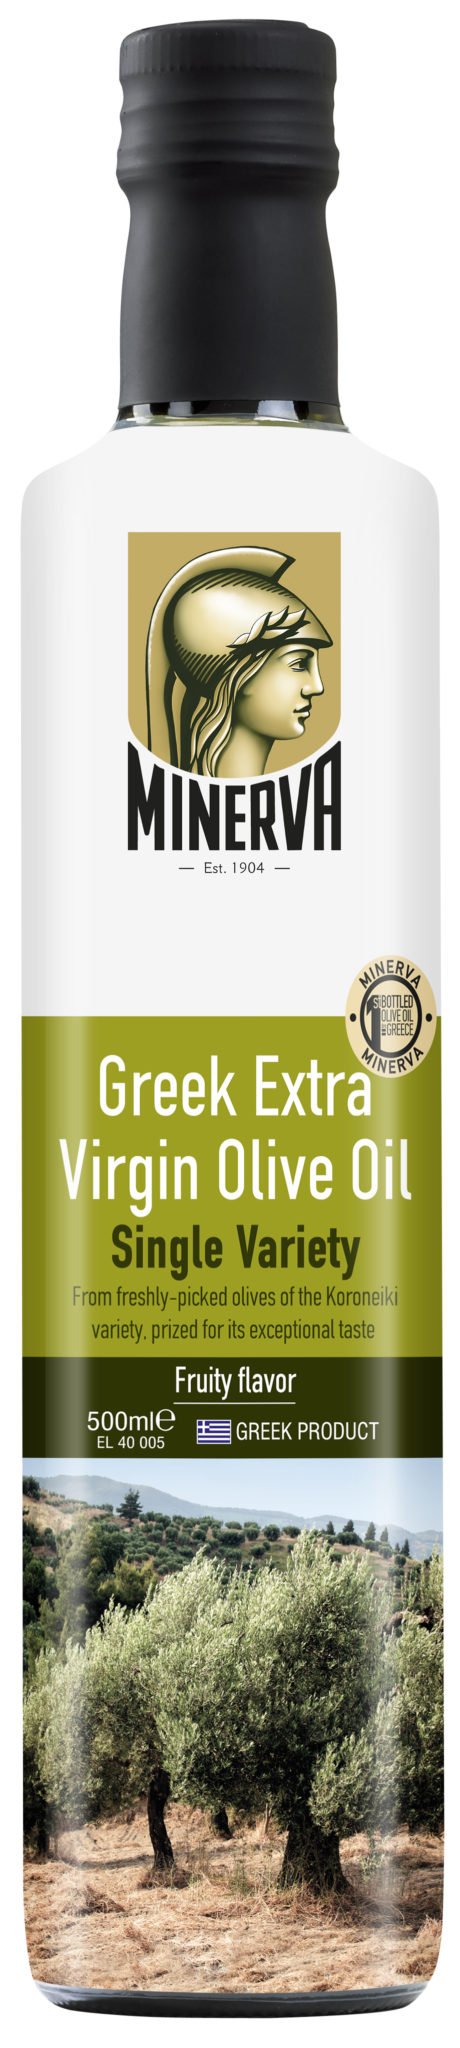 Minerva Greek Extra Virgin Olive Oil